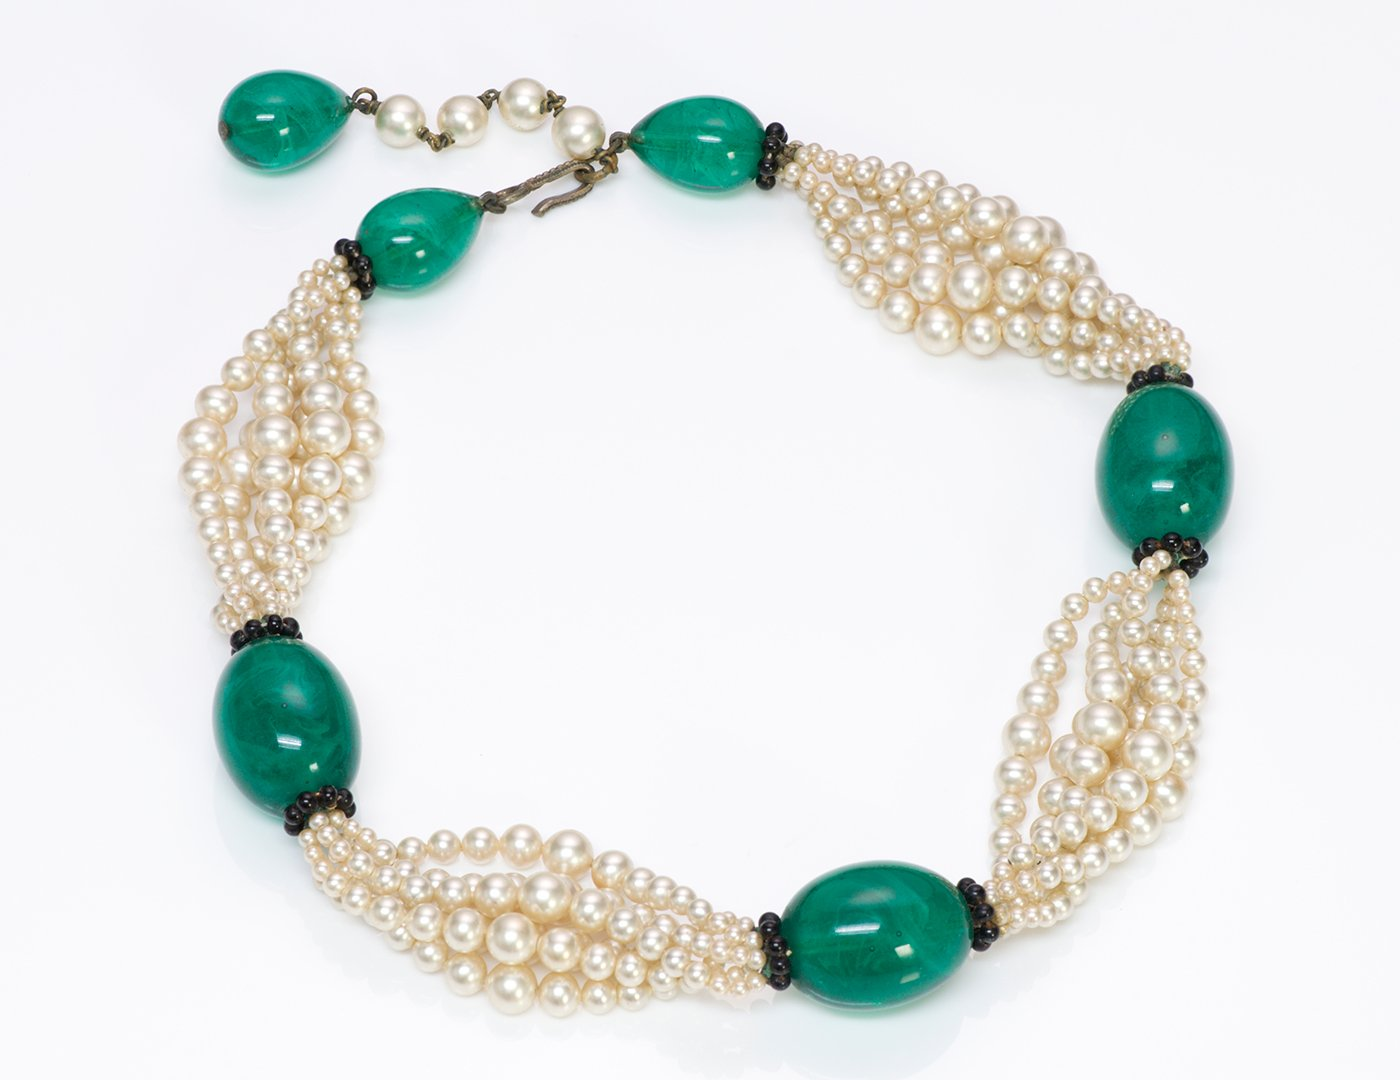 vintage-louis-rousselet-paris-green-glass-pearl-necklace